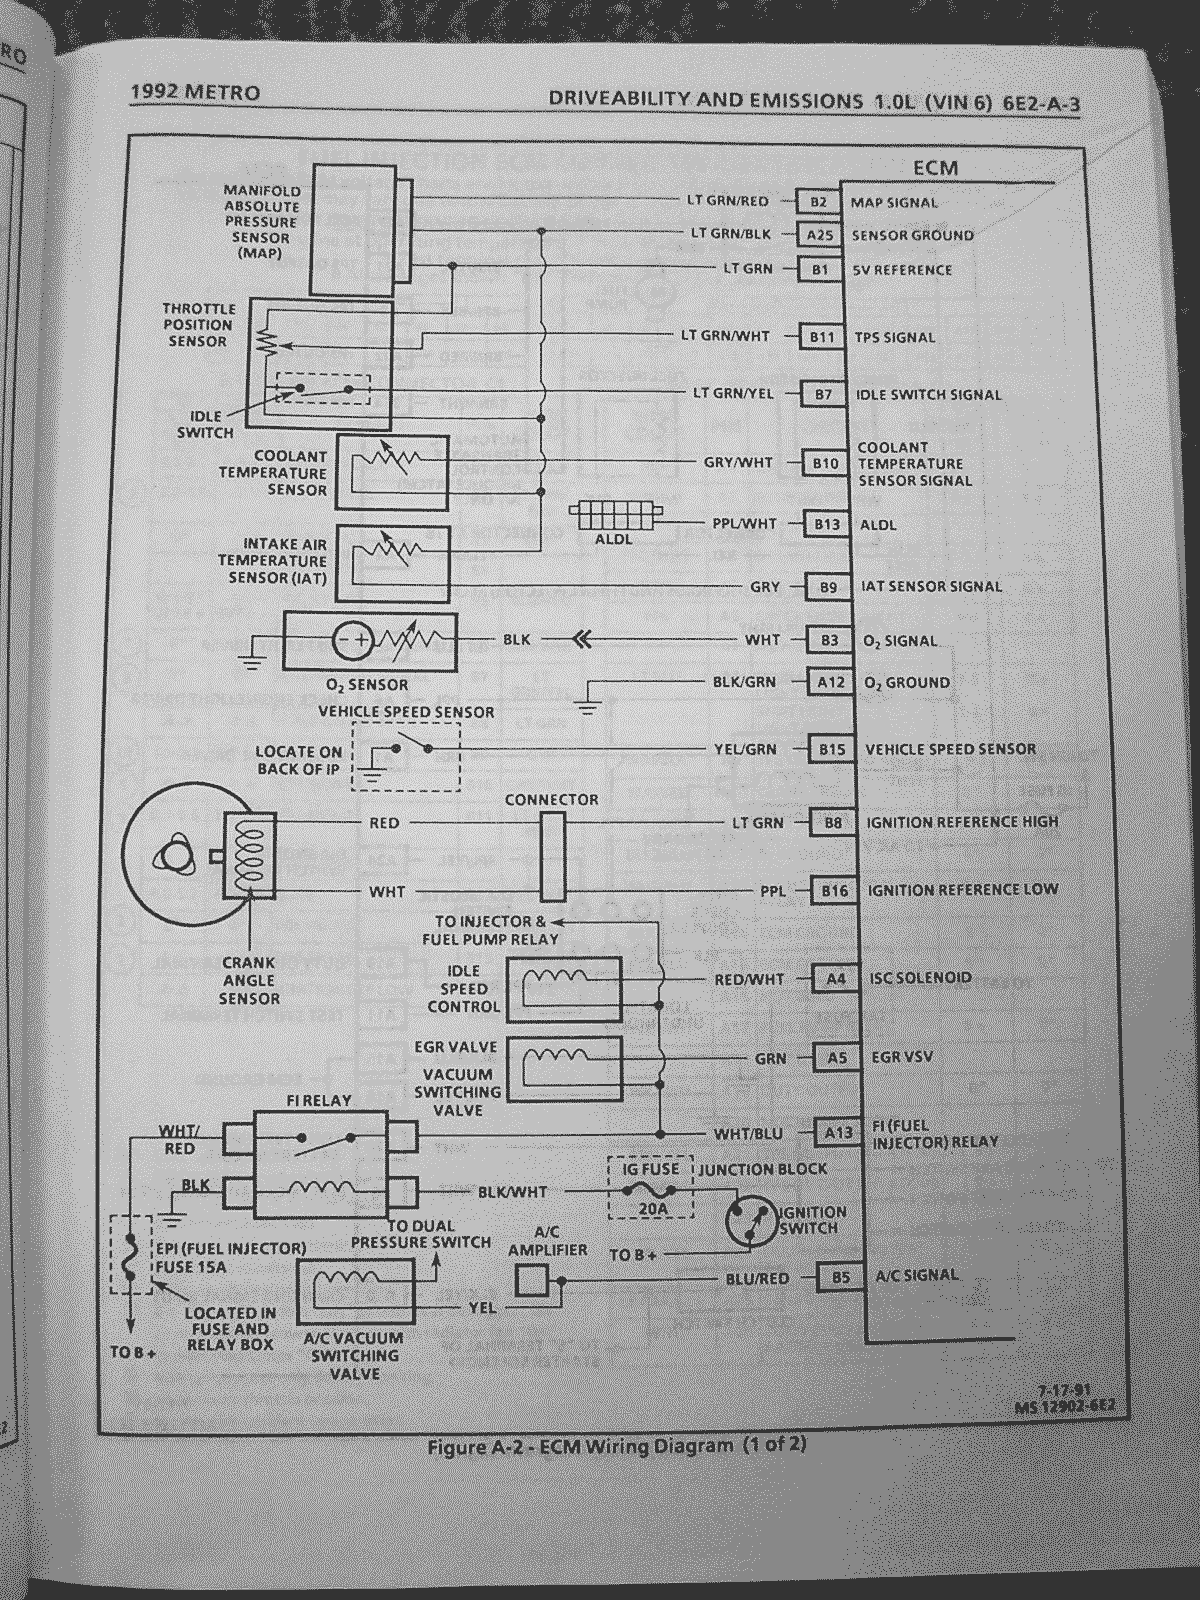 2001 Tracker Wiring Diagram    Wiring Diagram